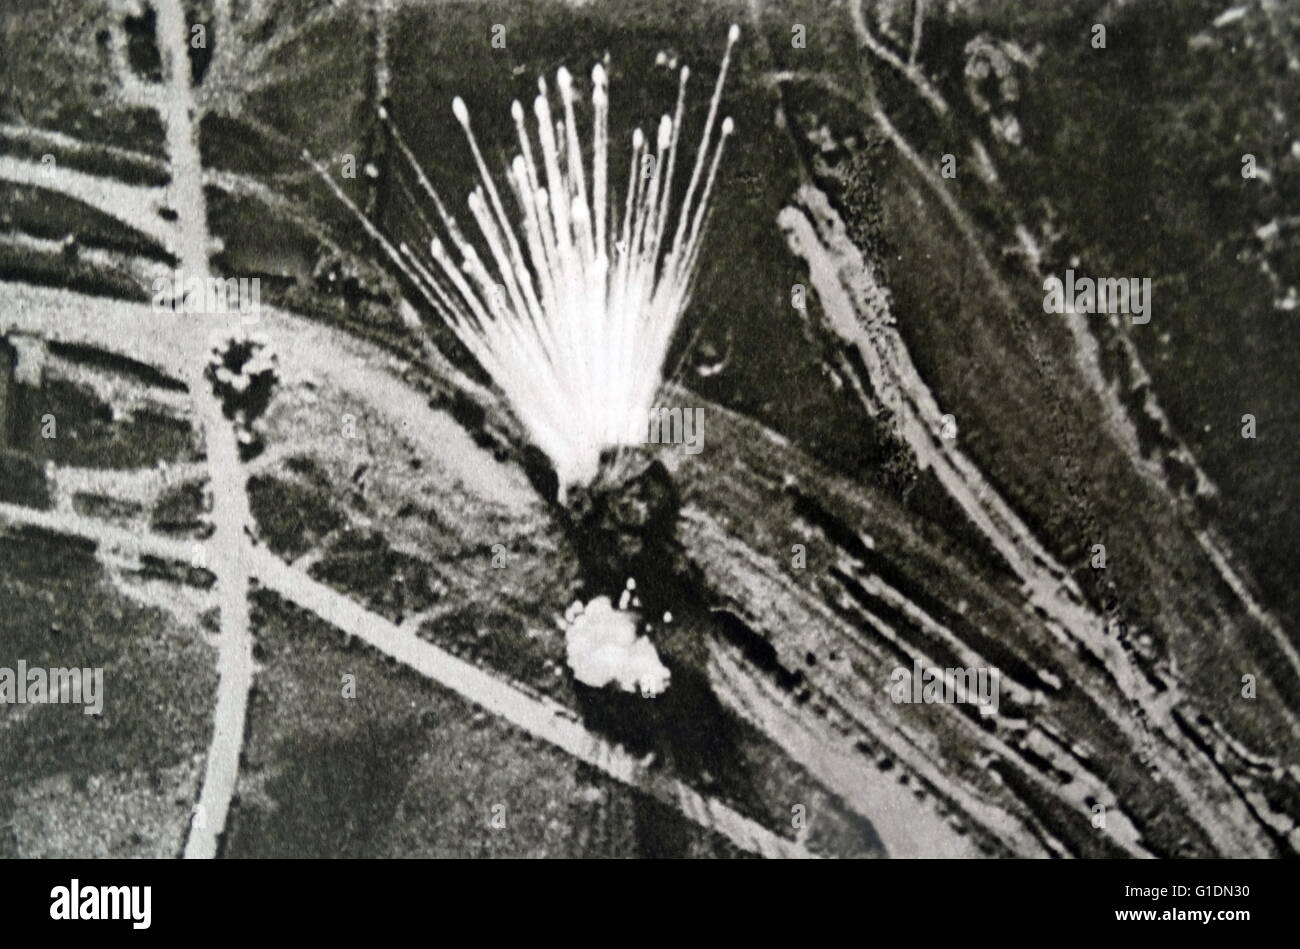 Photograph shows the explosive aftermath of an ammunition train during The Great War. Dated 20th Century - Stock Image